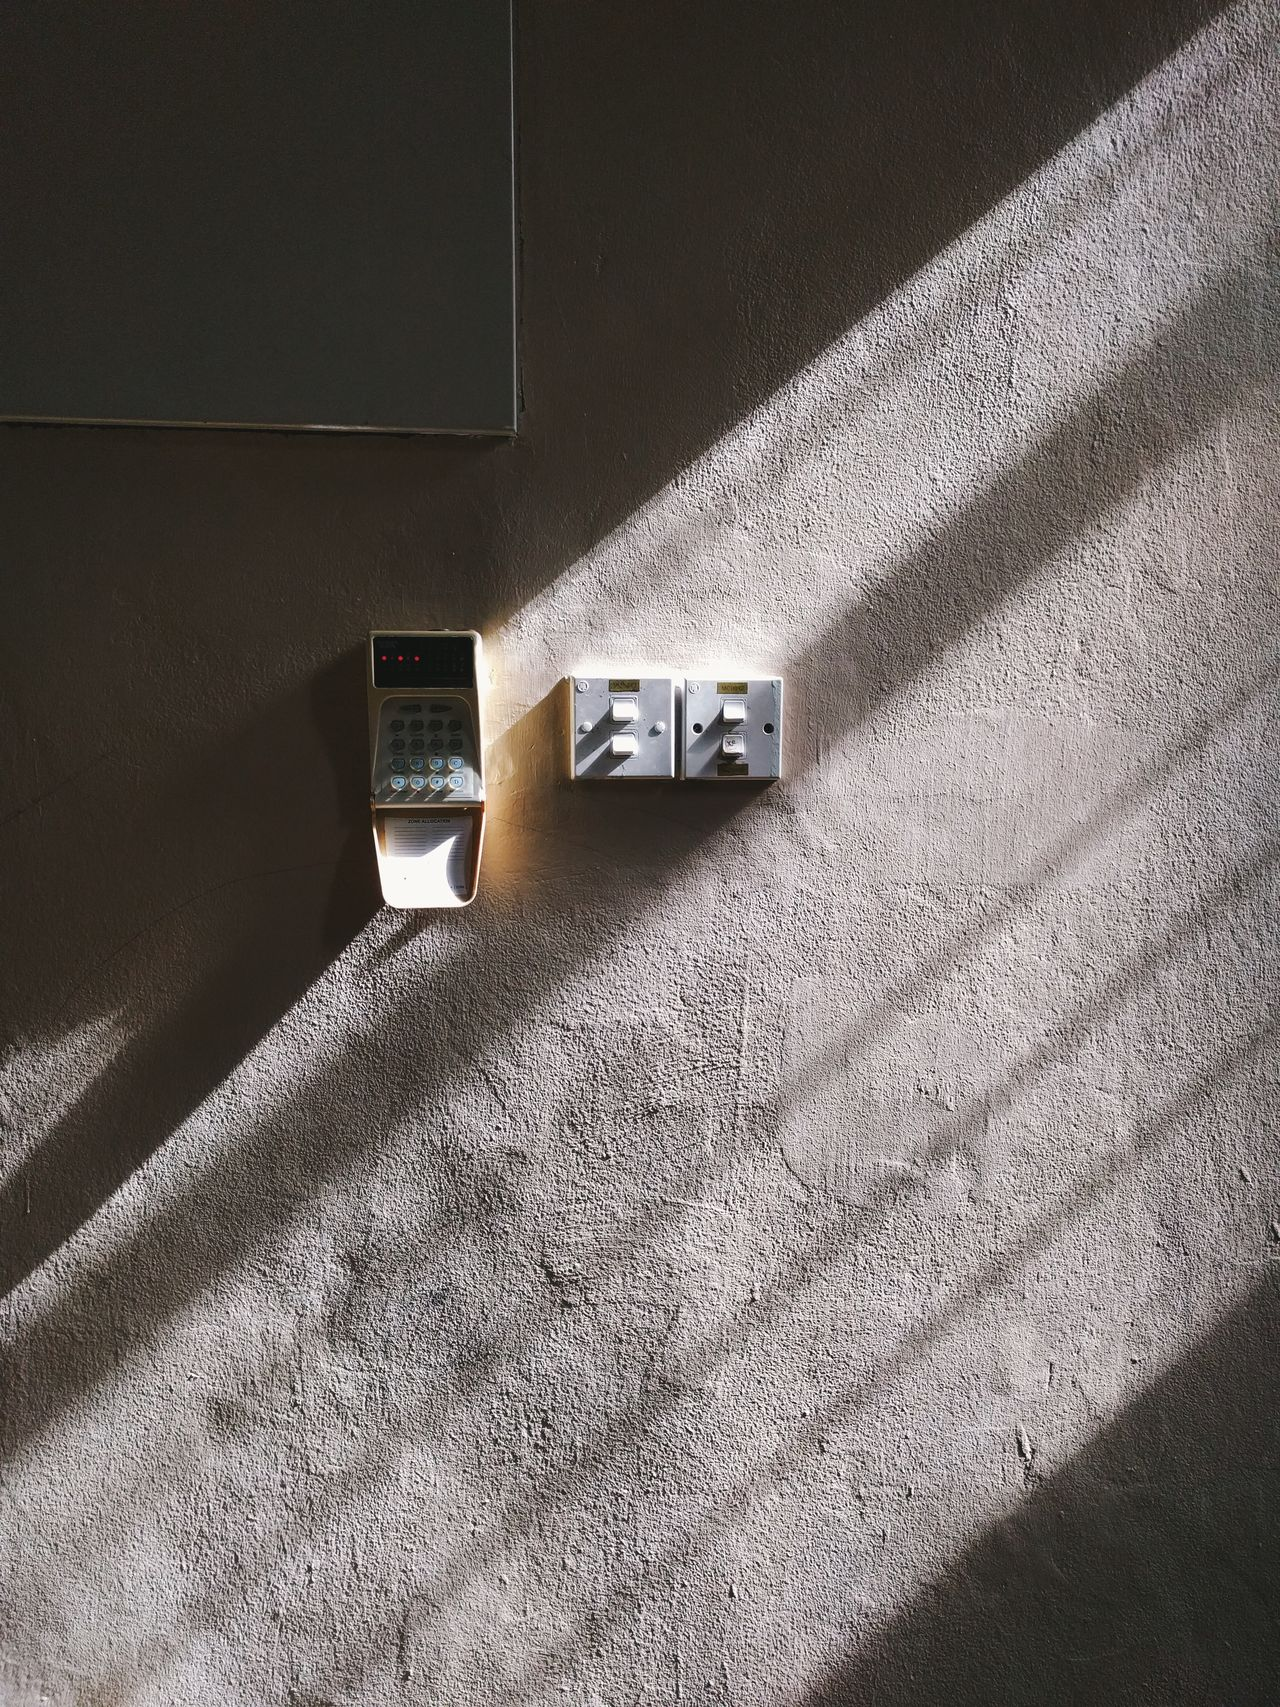 Beautiful lights are what makes the world goes round. No People Indoors  Day Textured  Built Structure Close-up Minmalism Minimalist Architecture Shadows & Lights Shadows On The Wall Electrical Switches